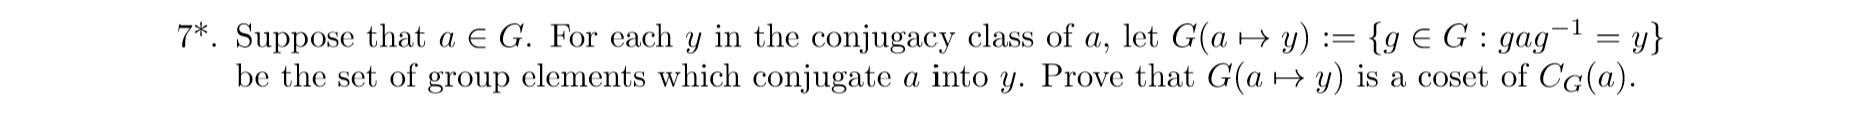 7 Suppose that a E G. For each y in the conjugacy class of a, let G(a y)= {g E G: gag= y} be the set of group elements which conjugate a into y. Prove that G(a y) is a coset of CG(a) 1